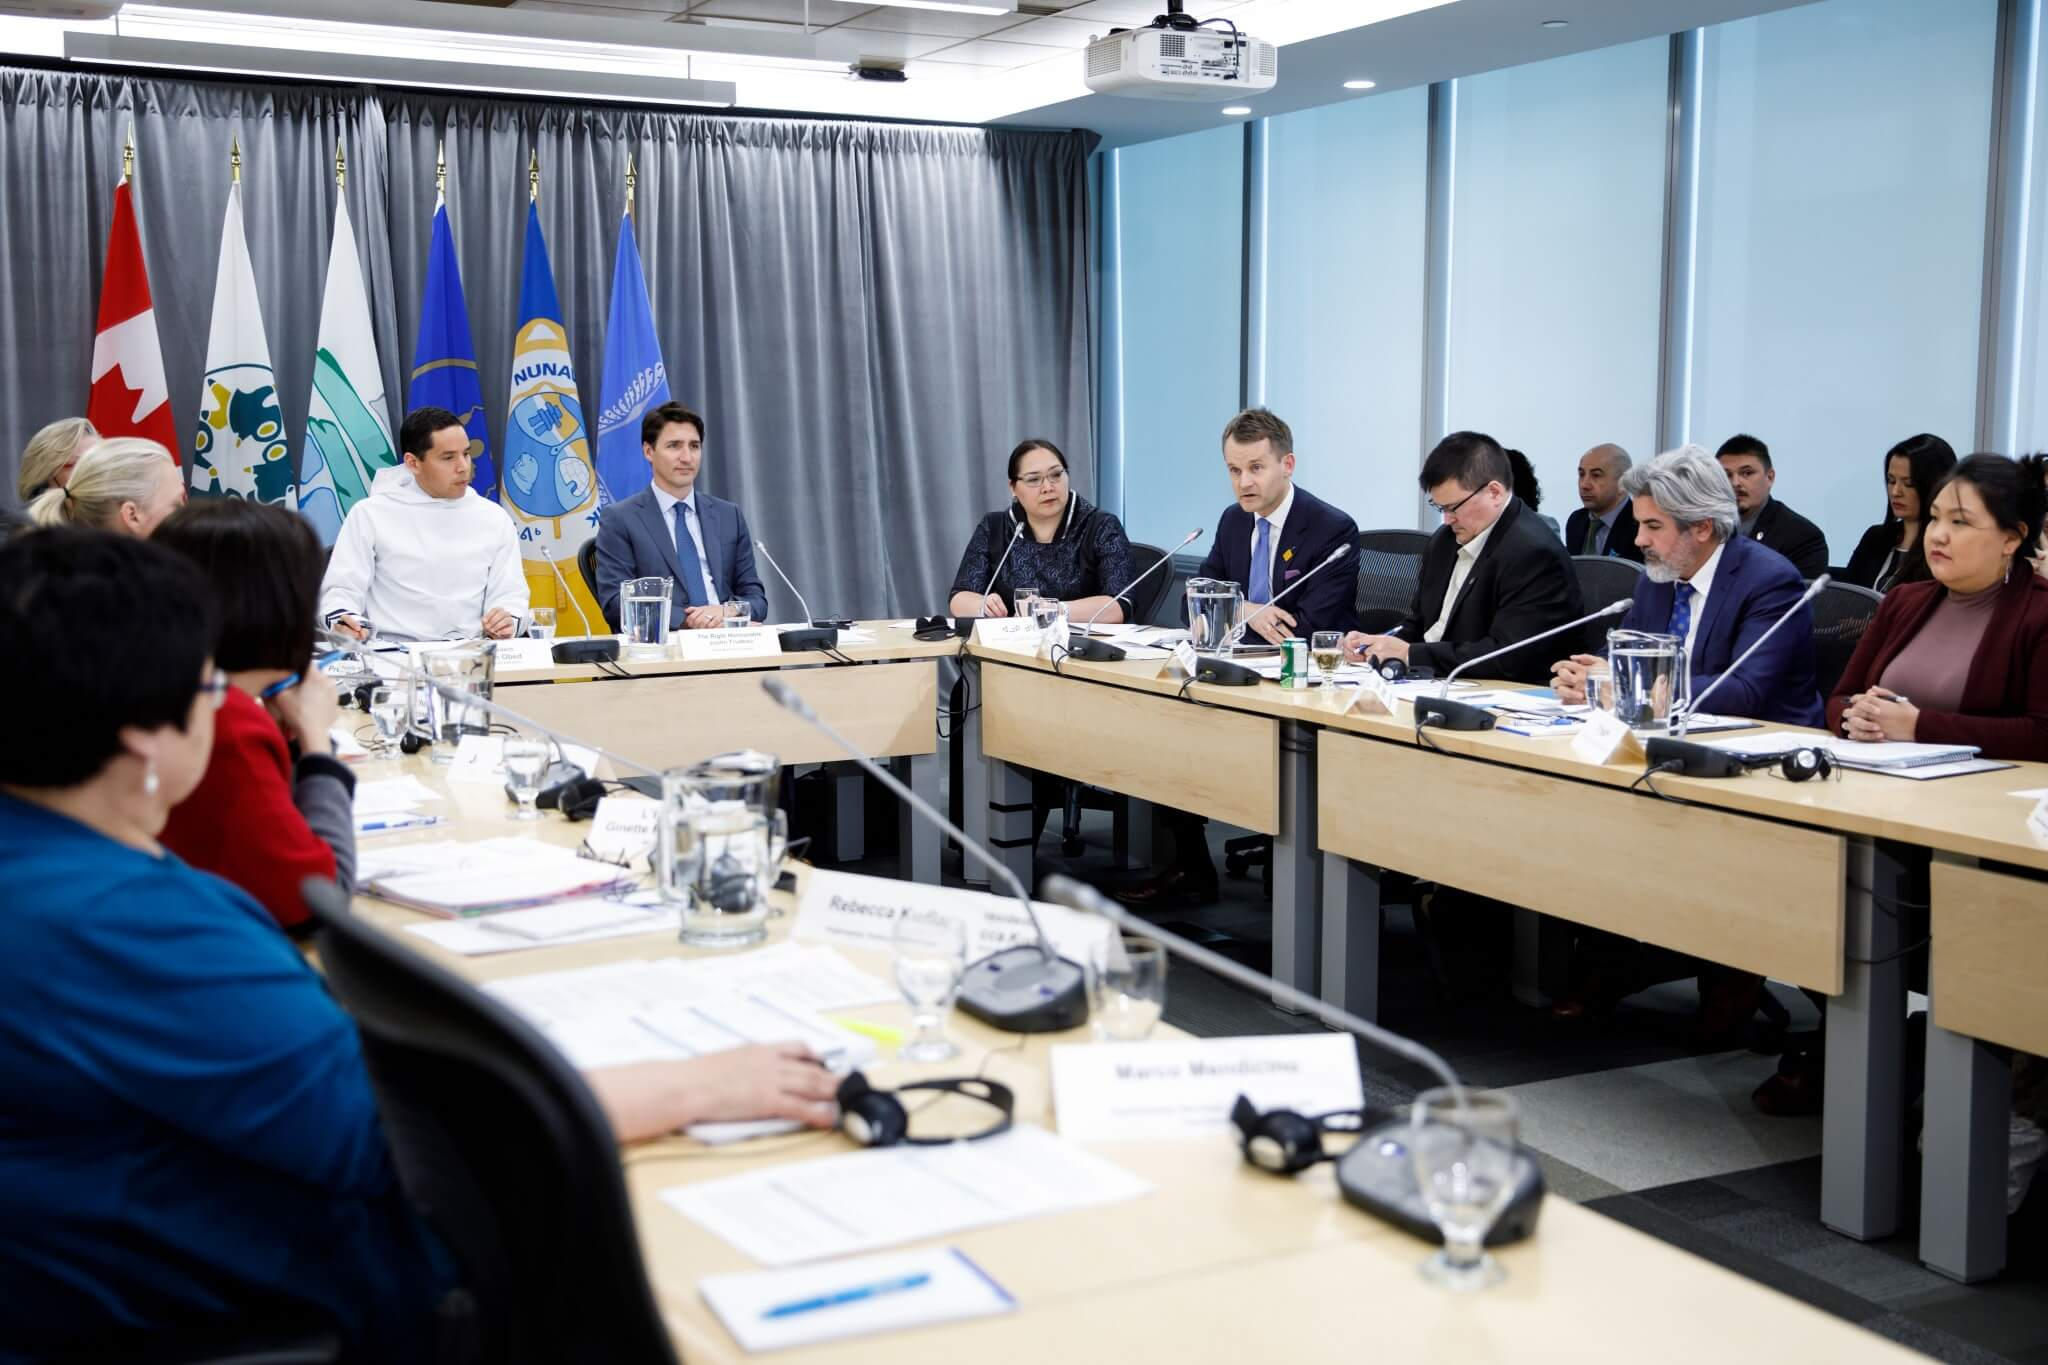 ICPC releases national Inuit housing strategy at third annual meeting with the Prime Minister